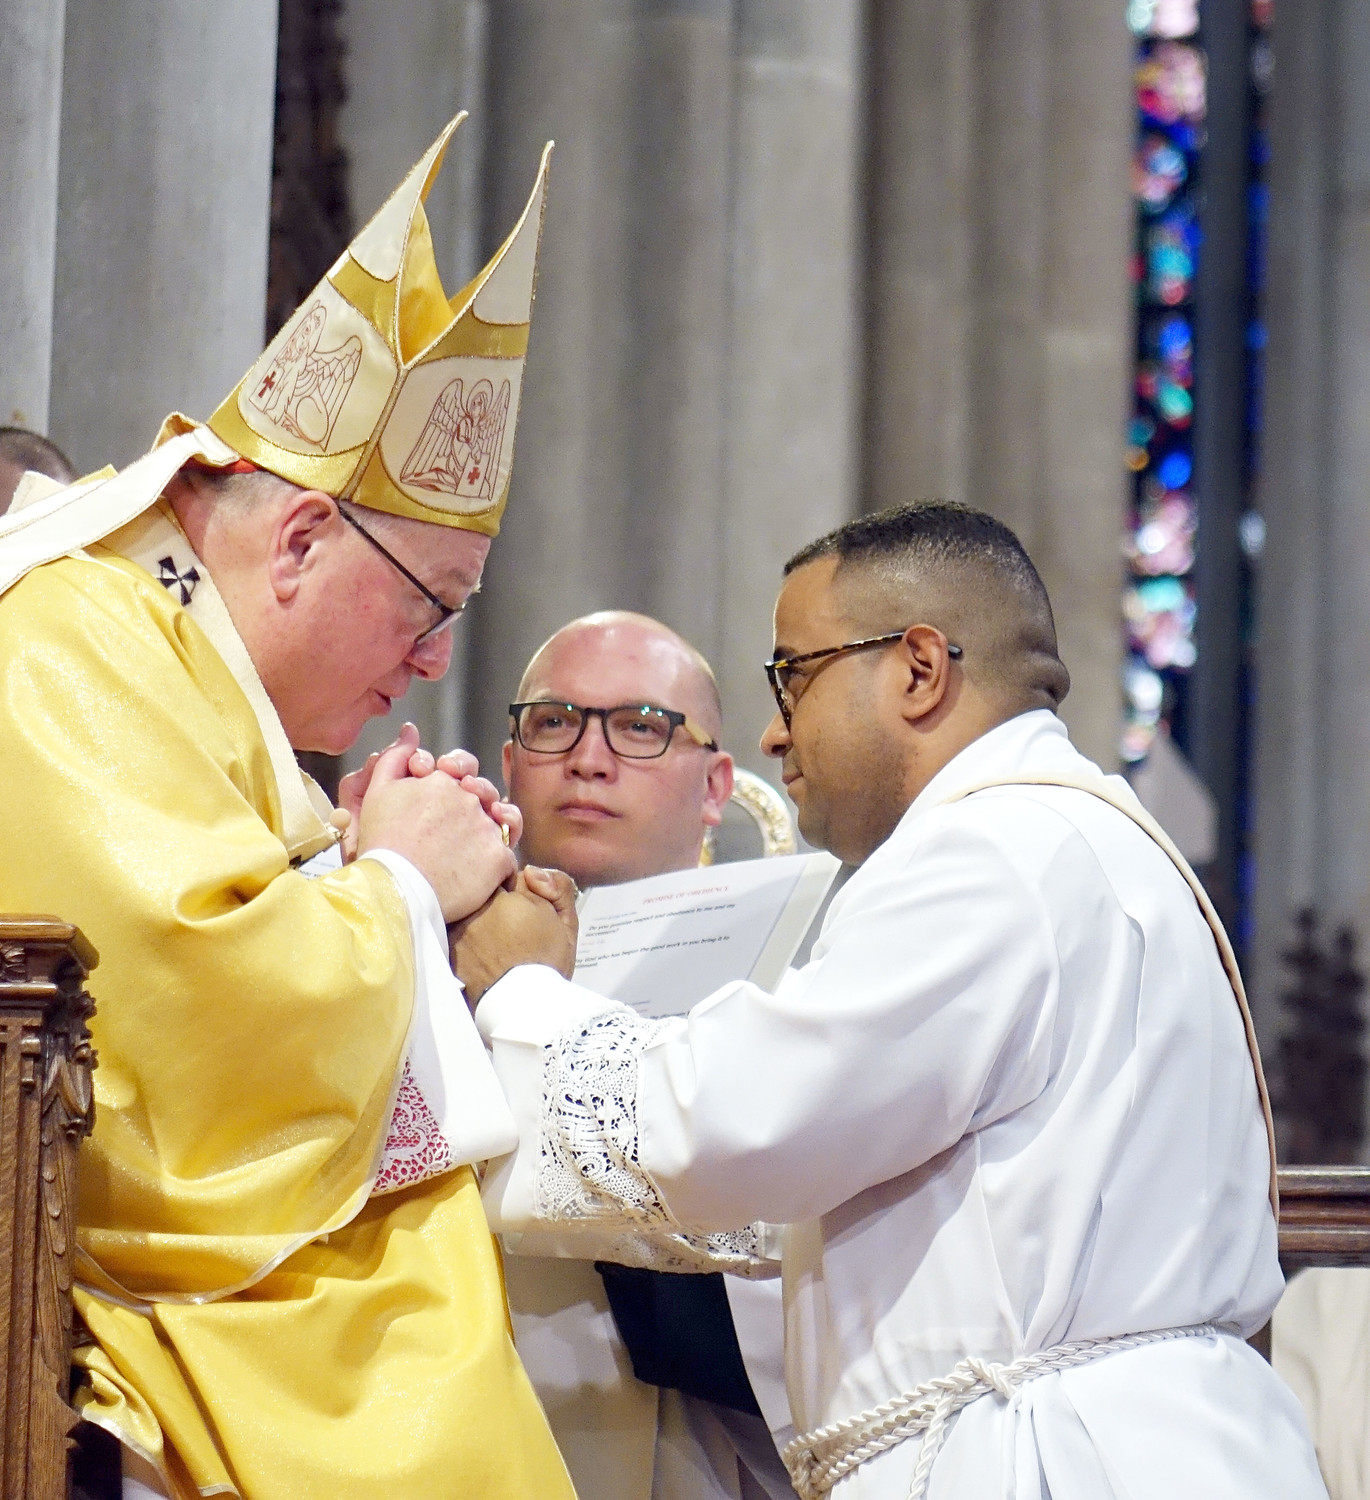 The cardinal clasps the hands of Father Osvaldo Hernandez during the Rite of Ordination.